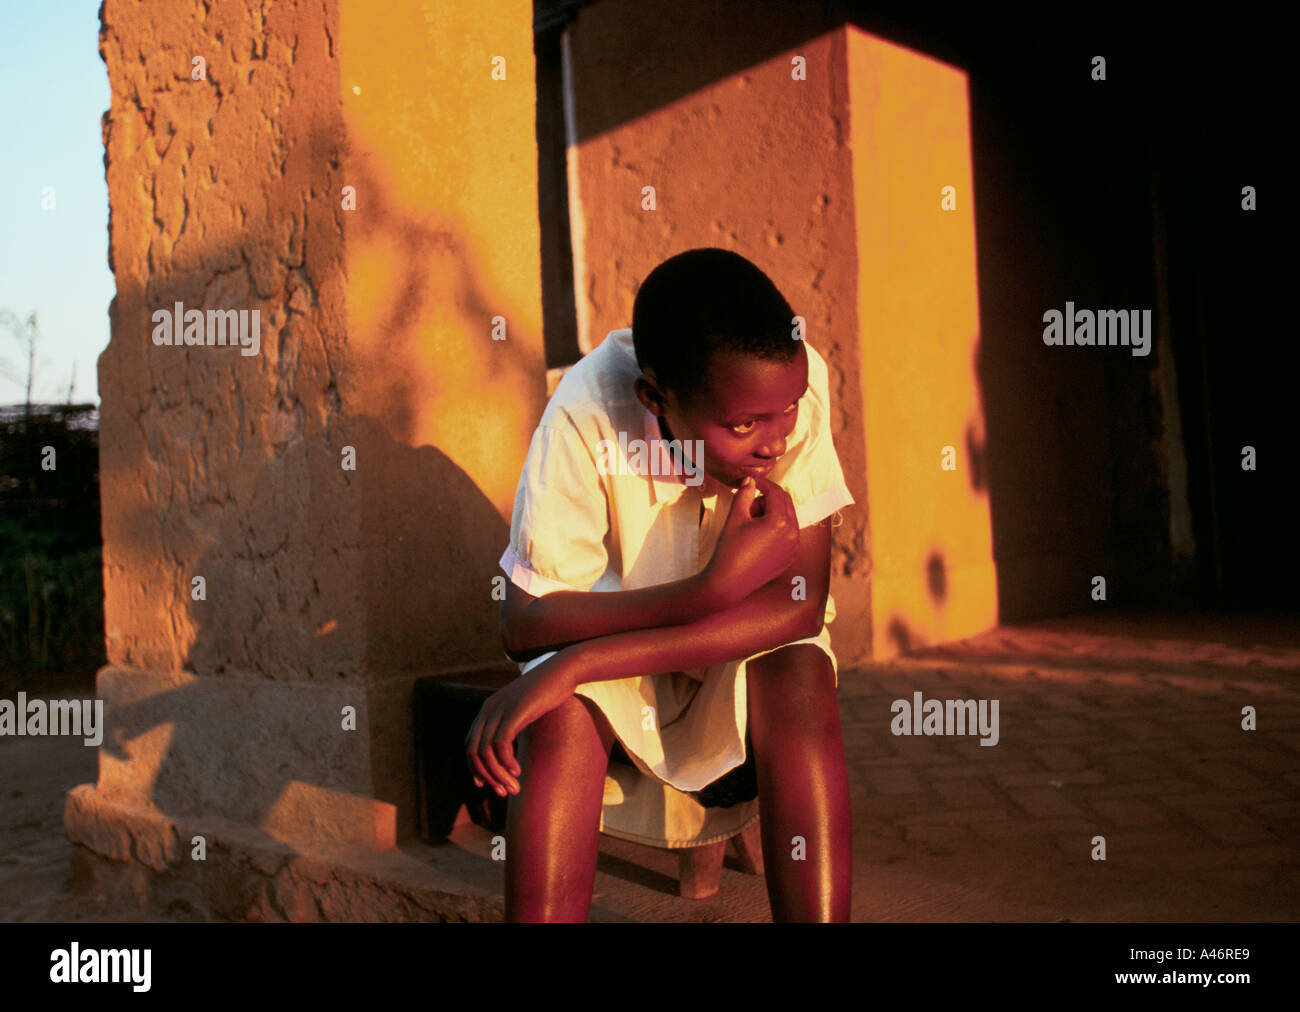 fecility is 14 years old both her parents were killed in the genocide Shalom House ruyigi burundi Stock Photo